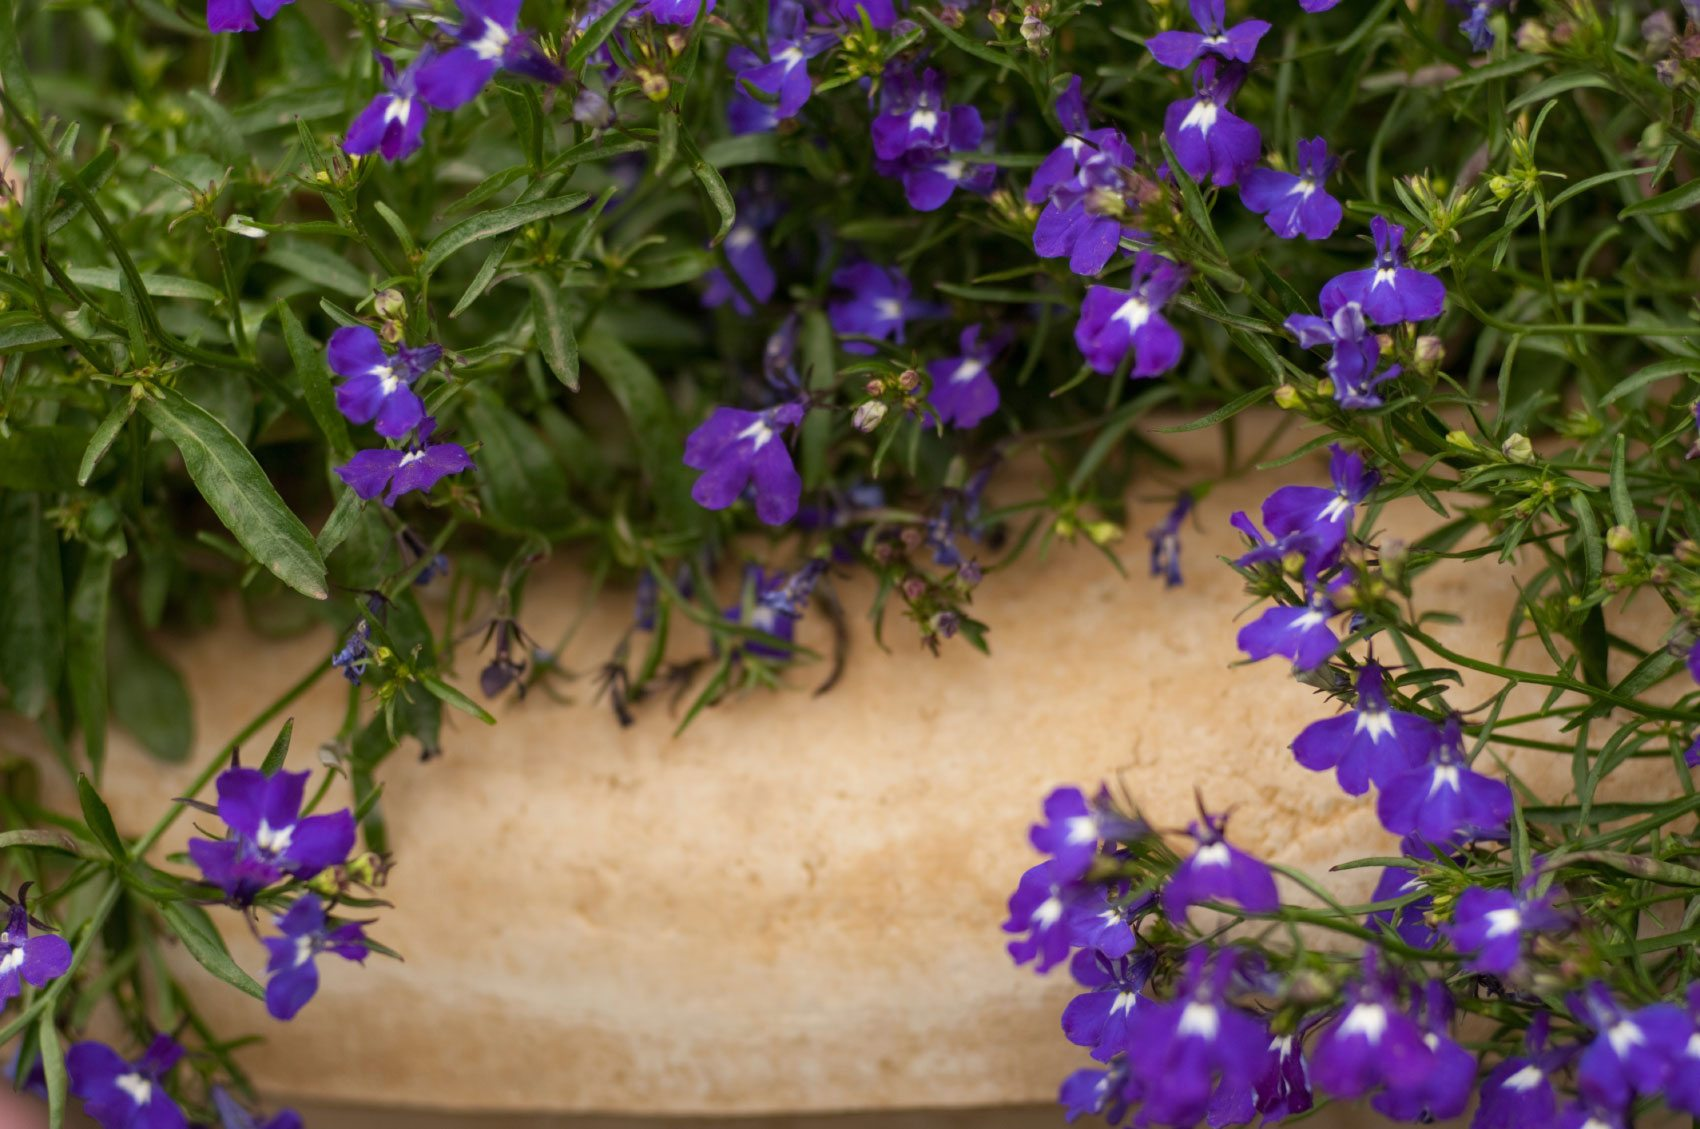 Trimming Back Lobelia When And How To Prune Lobelia Flowers